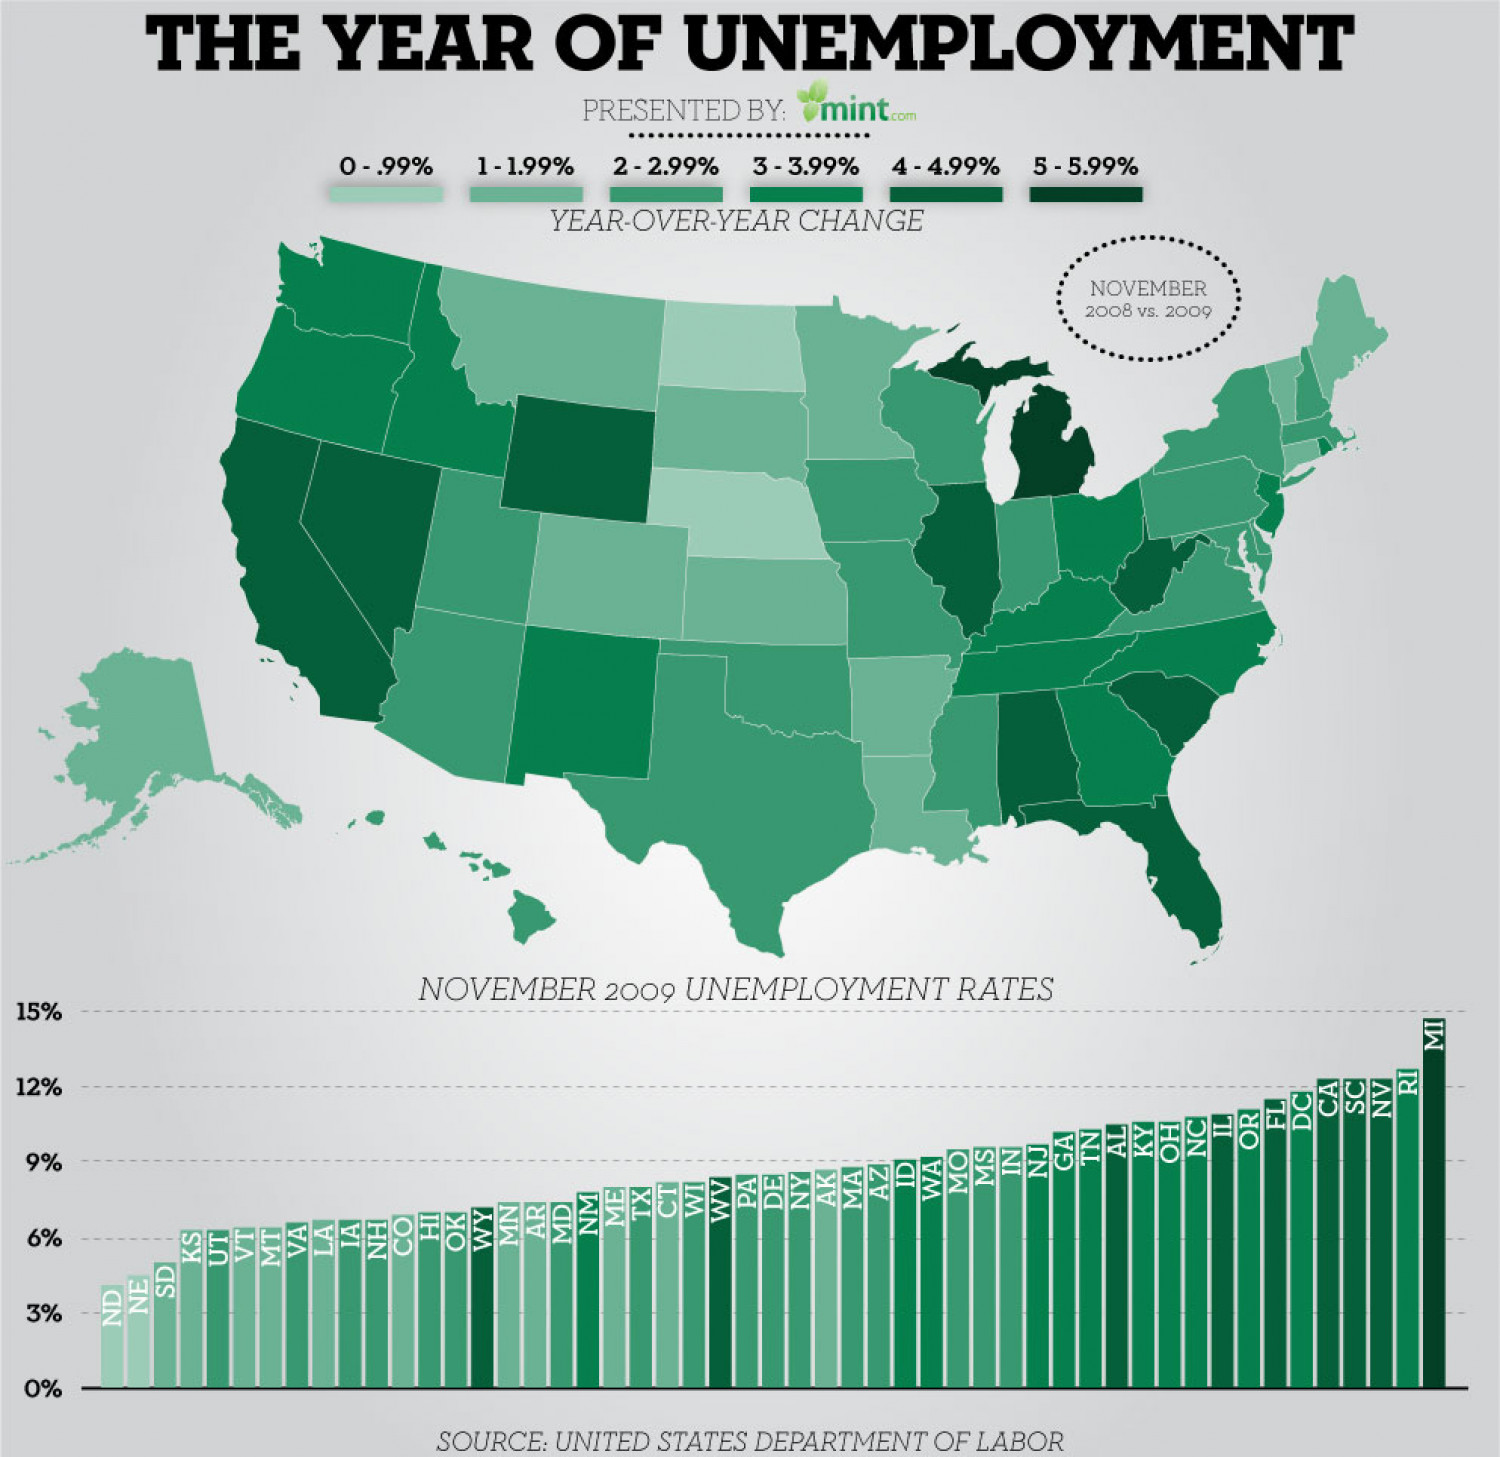 The Year of Unemployment Infographic